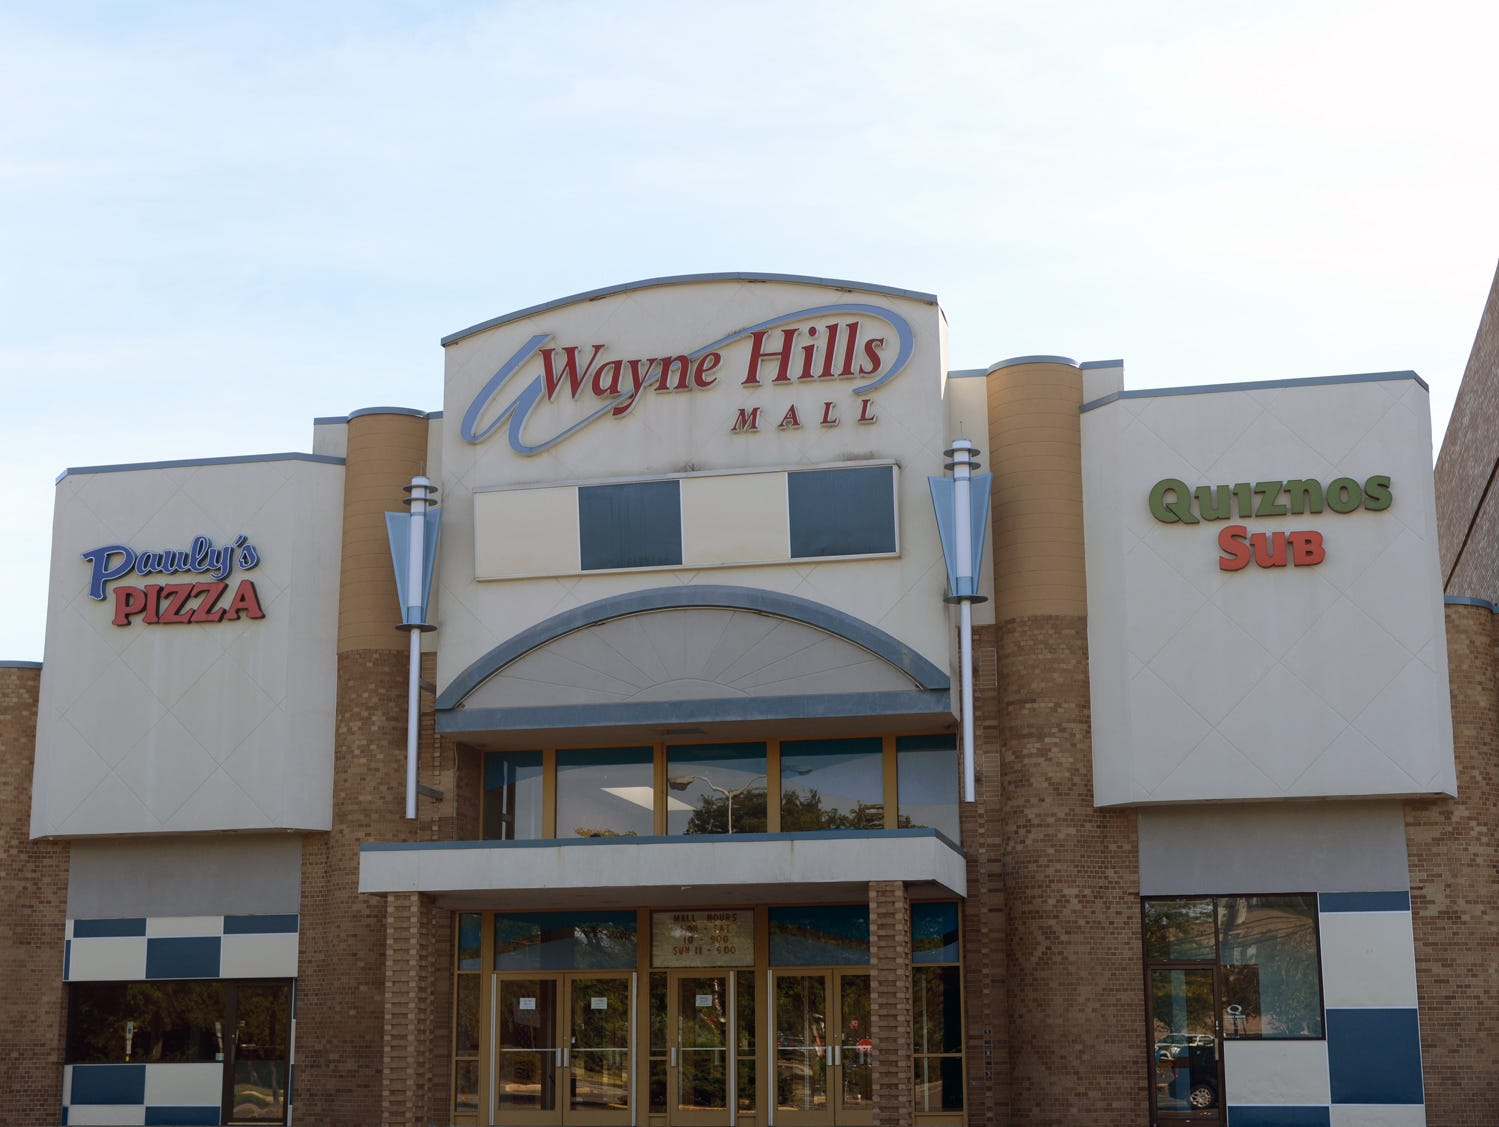 Wayne Hills Mall, Sept. 24, 2014.